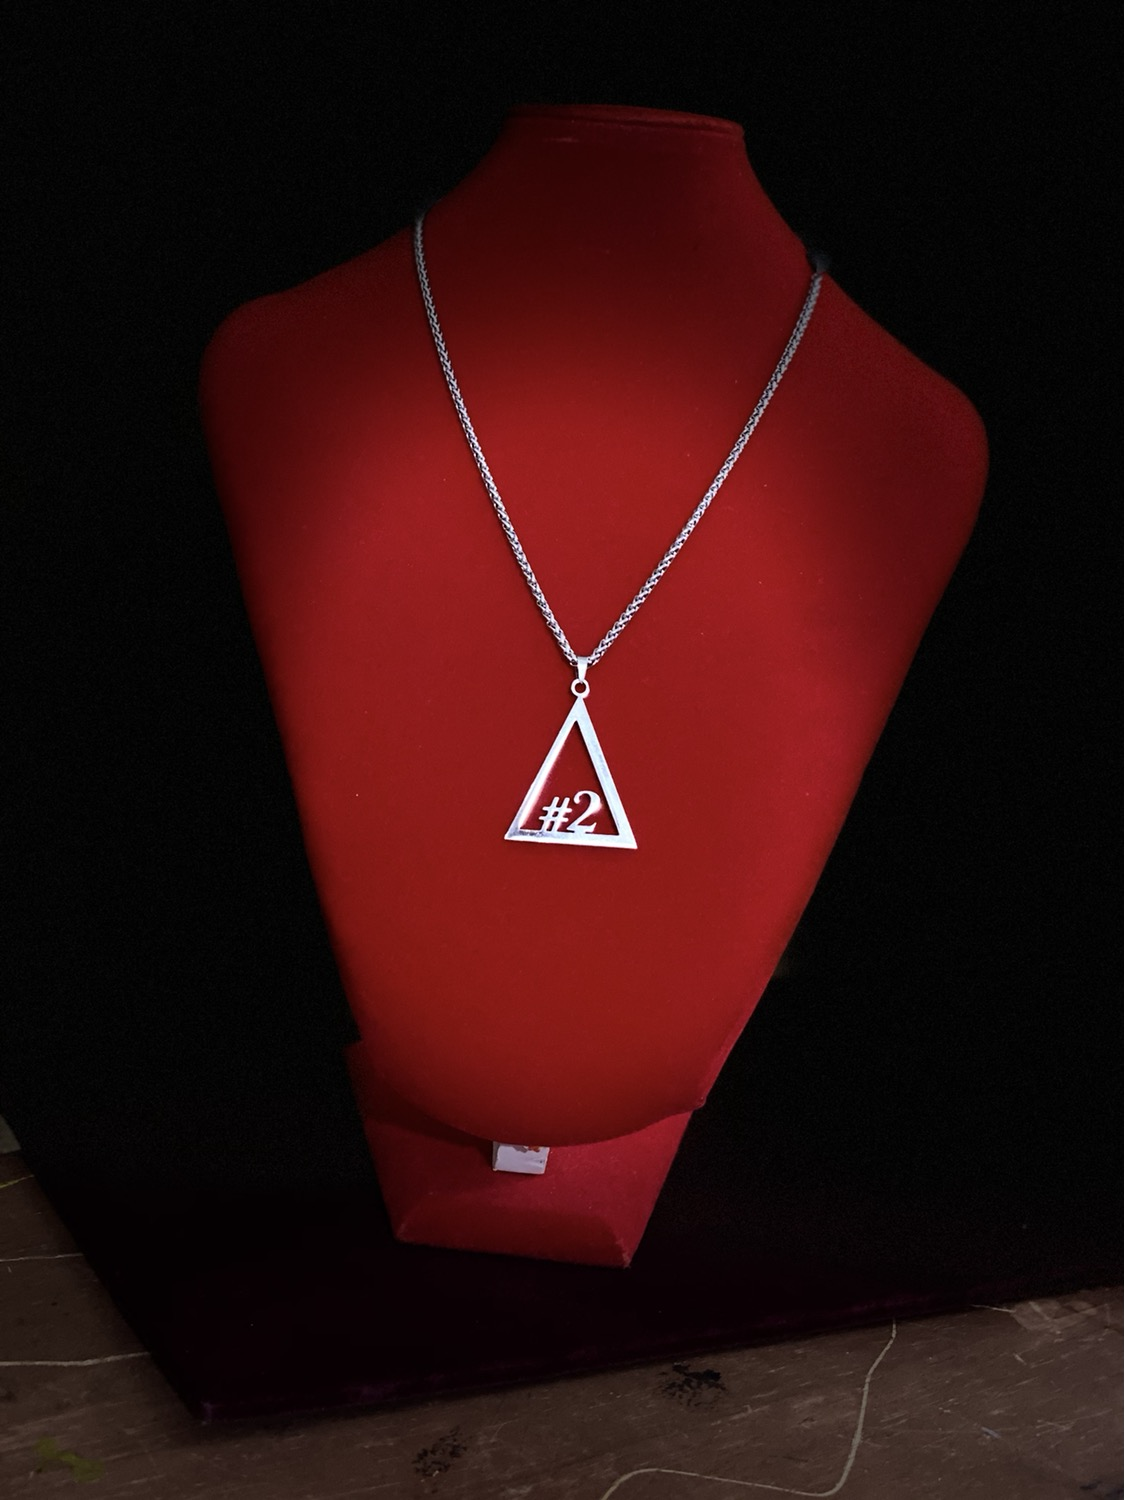 Thumbnail: Delta #1 - #10 Line Numbers SILVER Stainless Steel Pendant-Necklace!